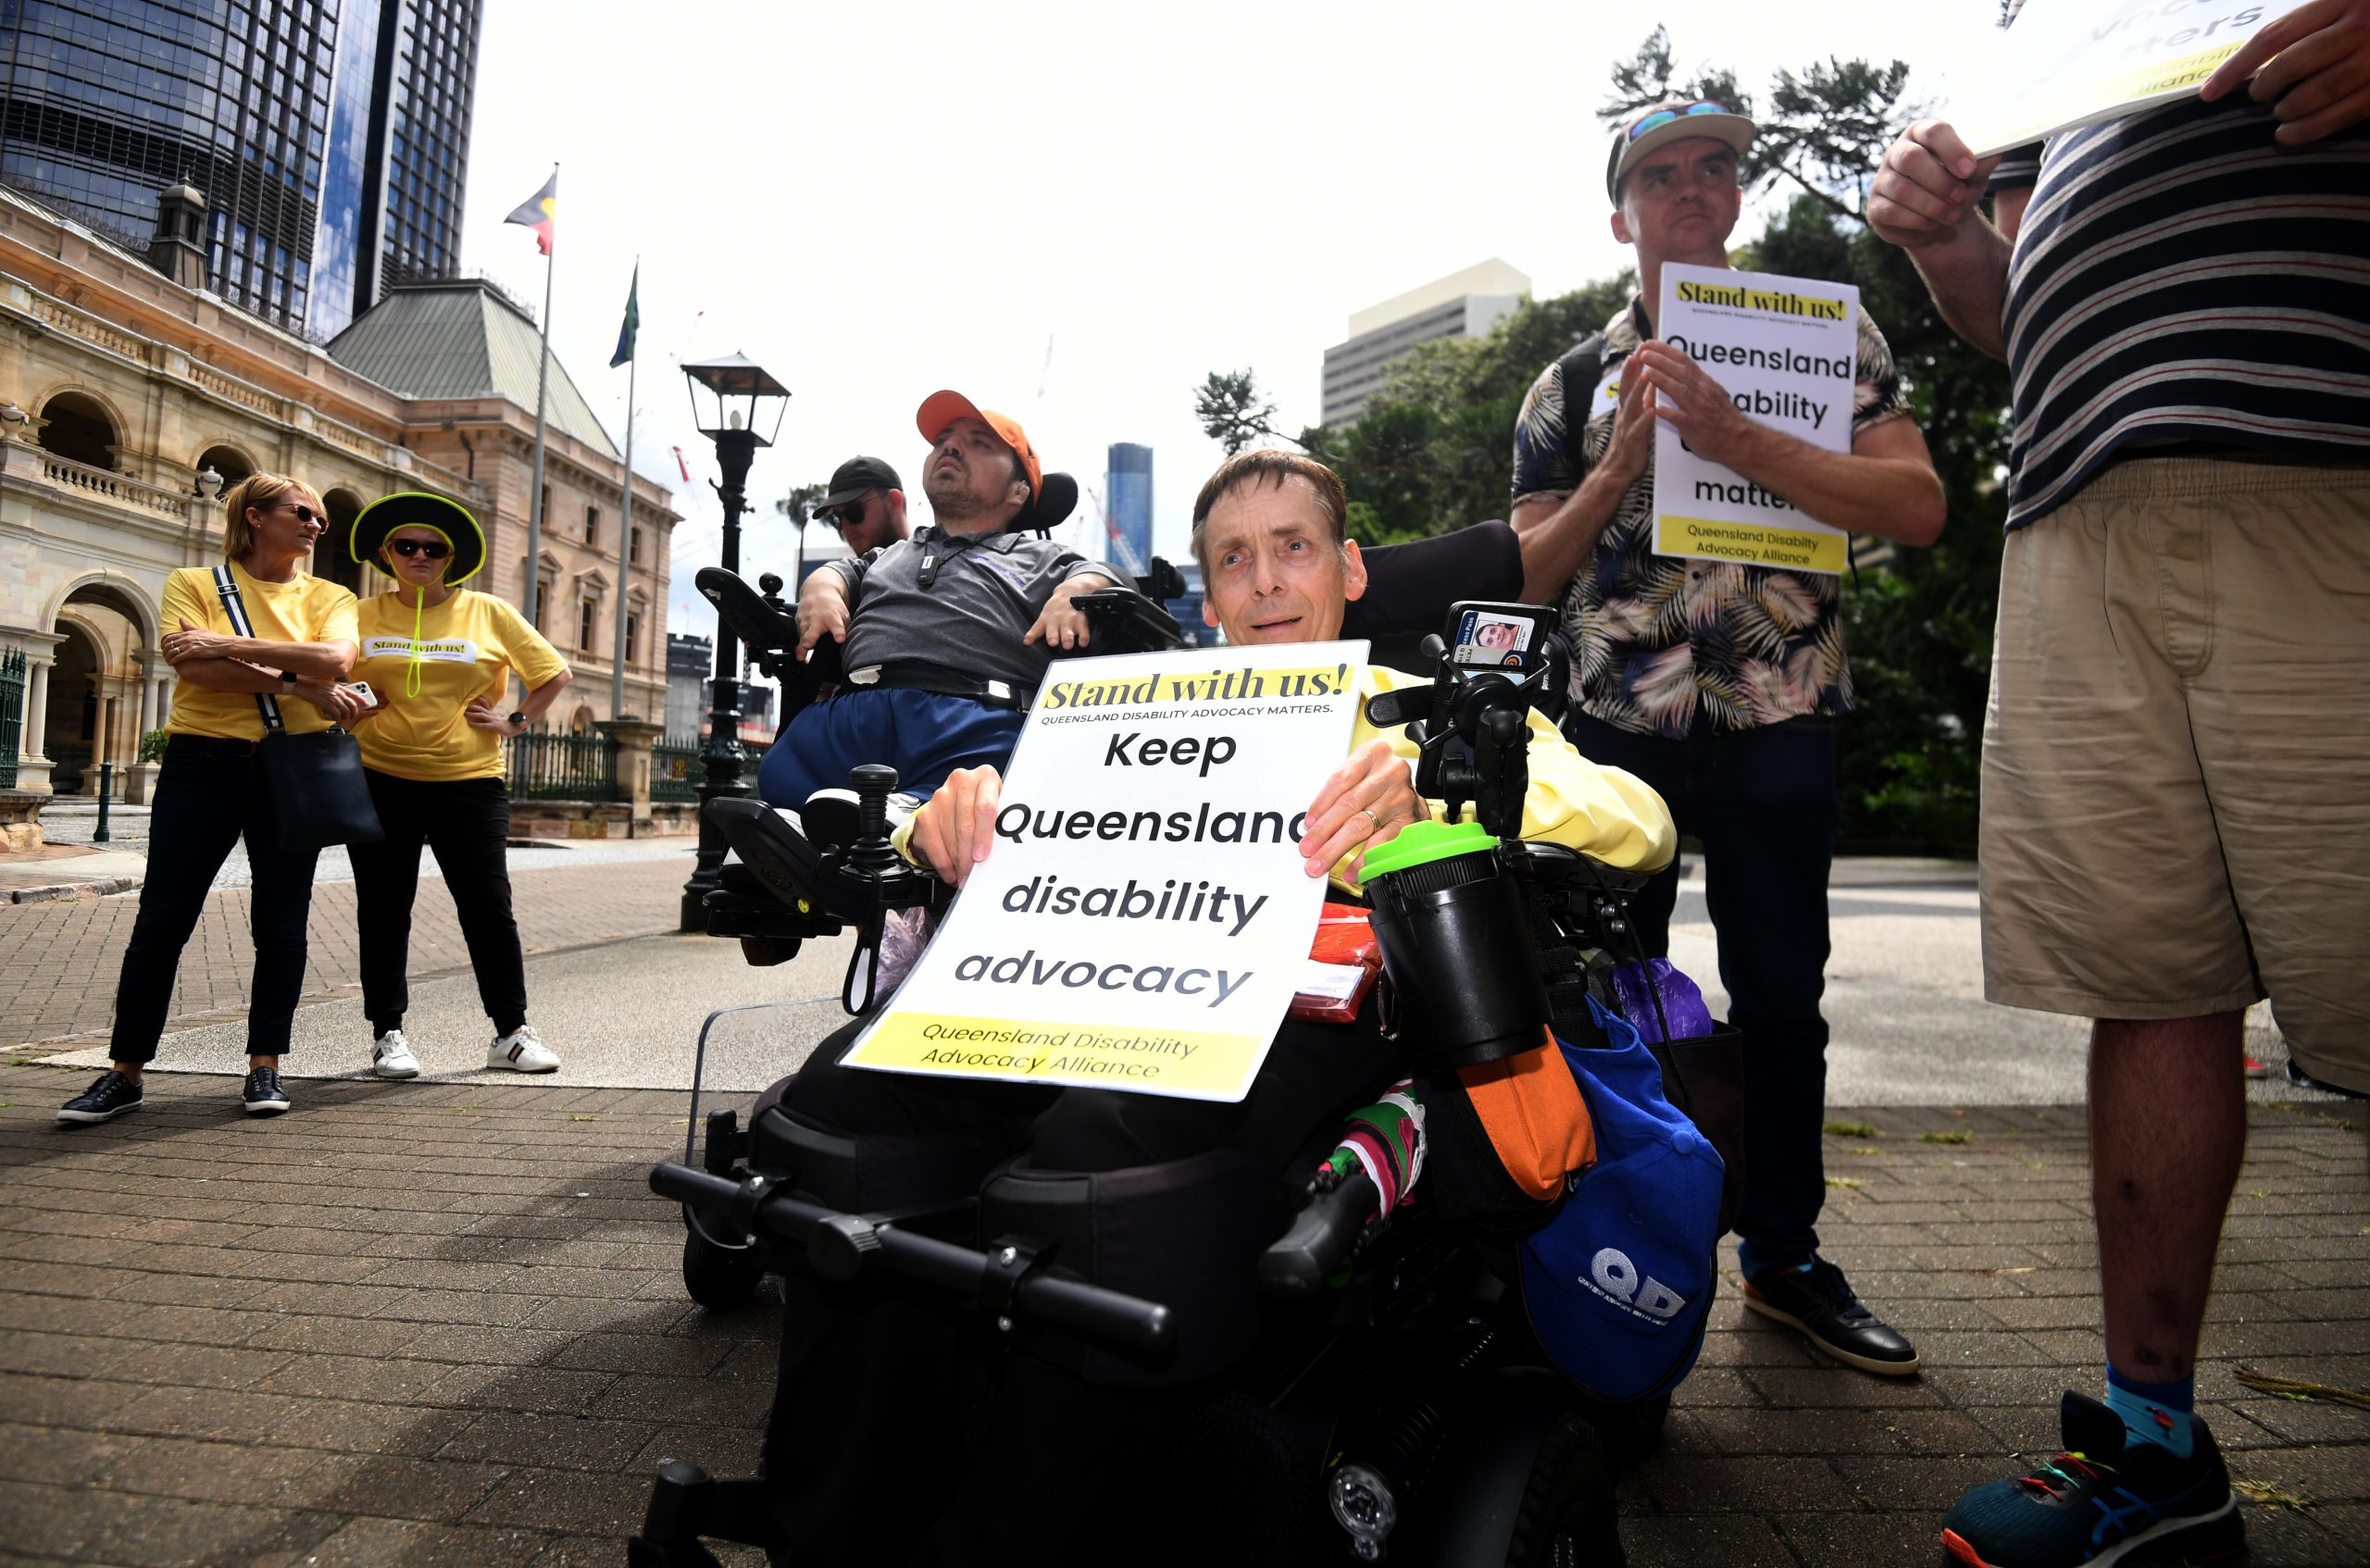 A man in a wheelchair holding a sign which says Keep Queensland disability advocacy.